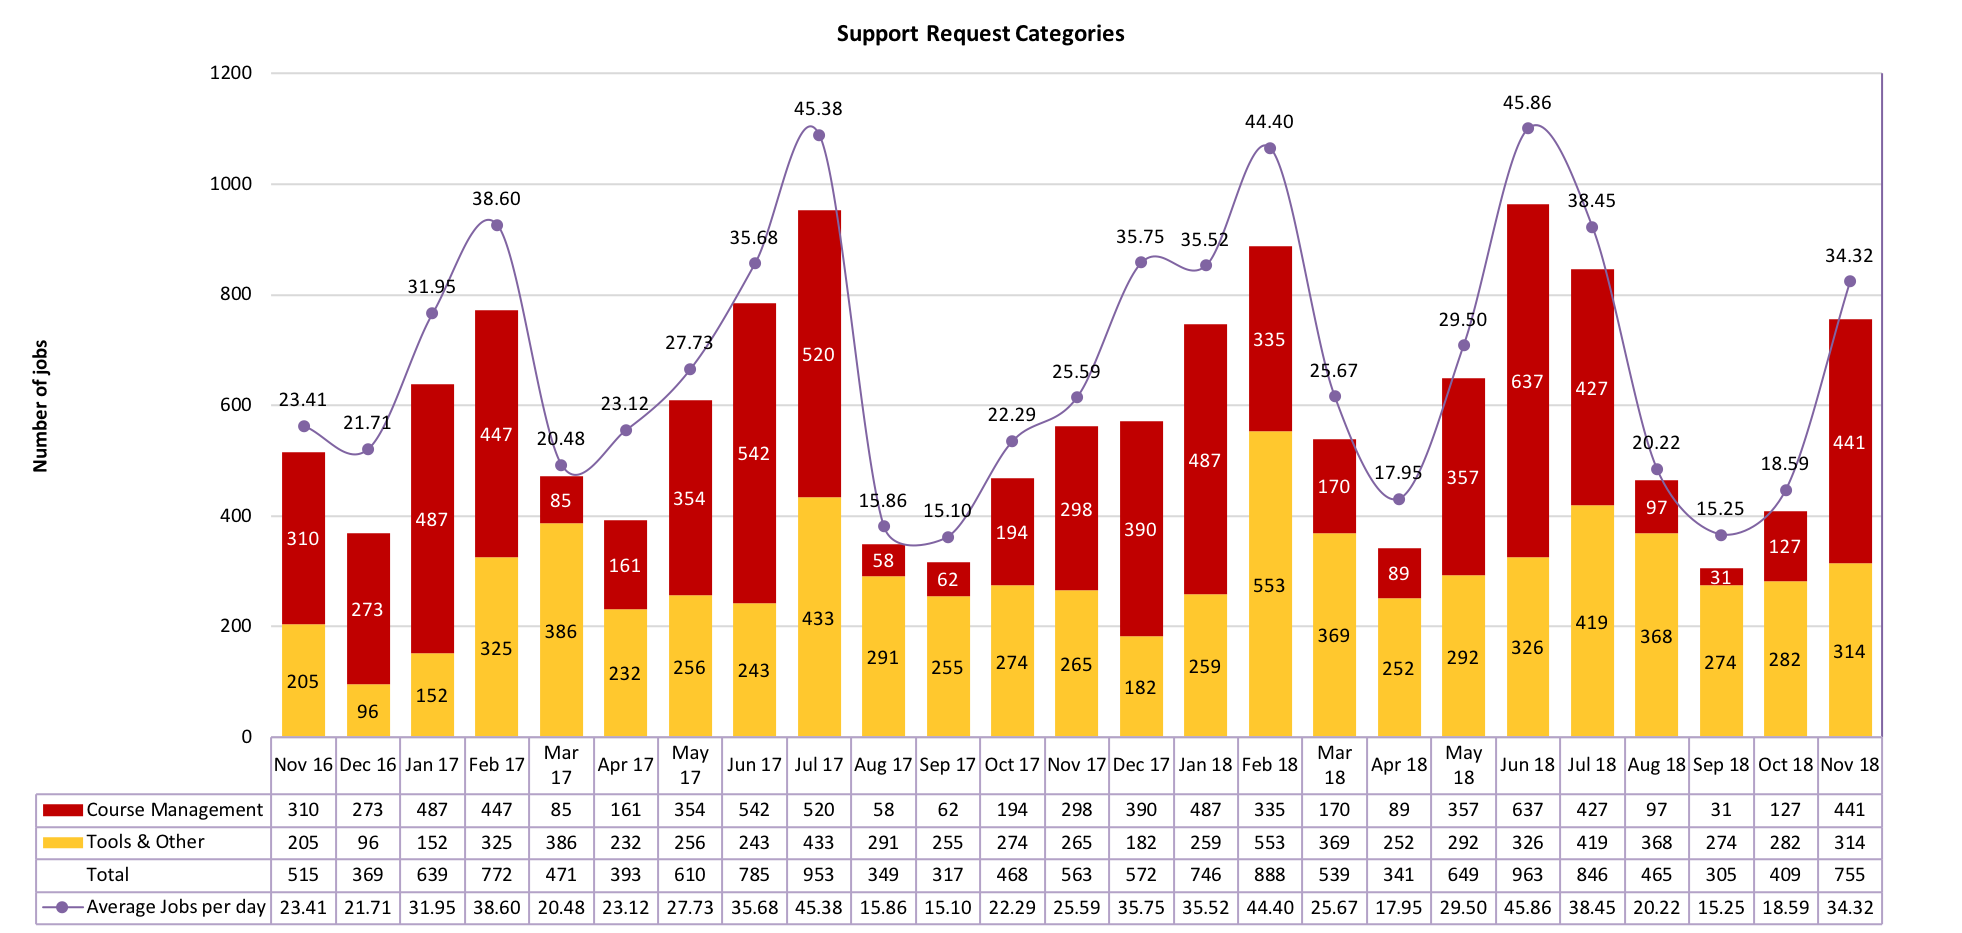 Chart of Support Request Categories from November 2016 to November 2018